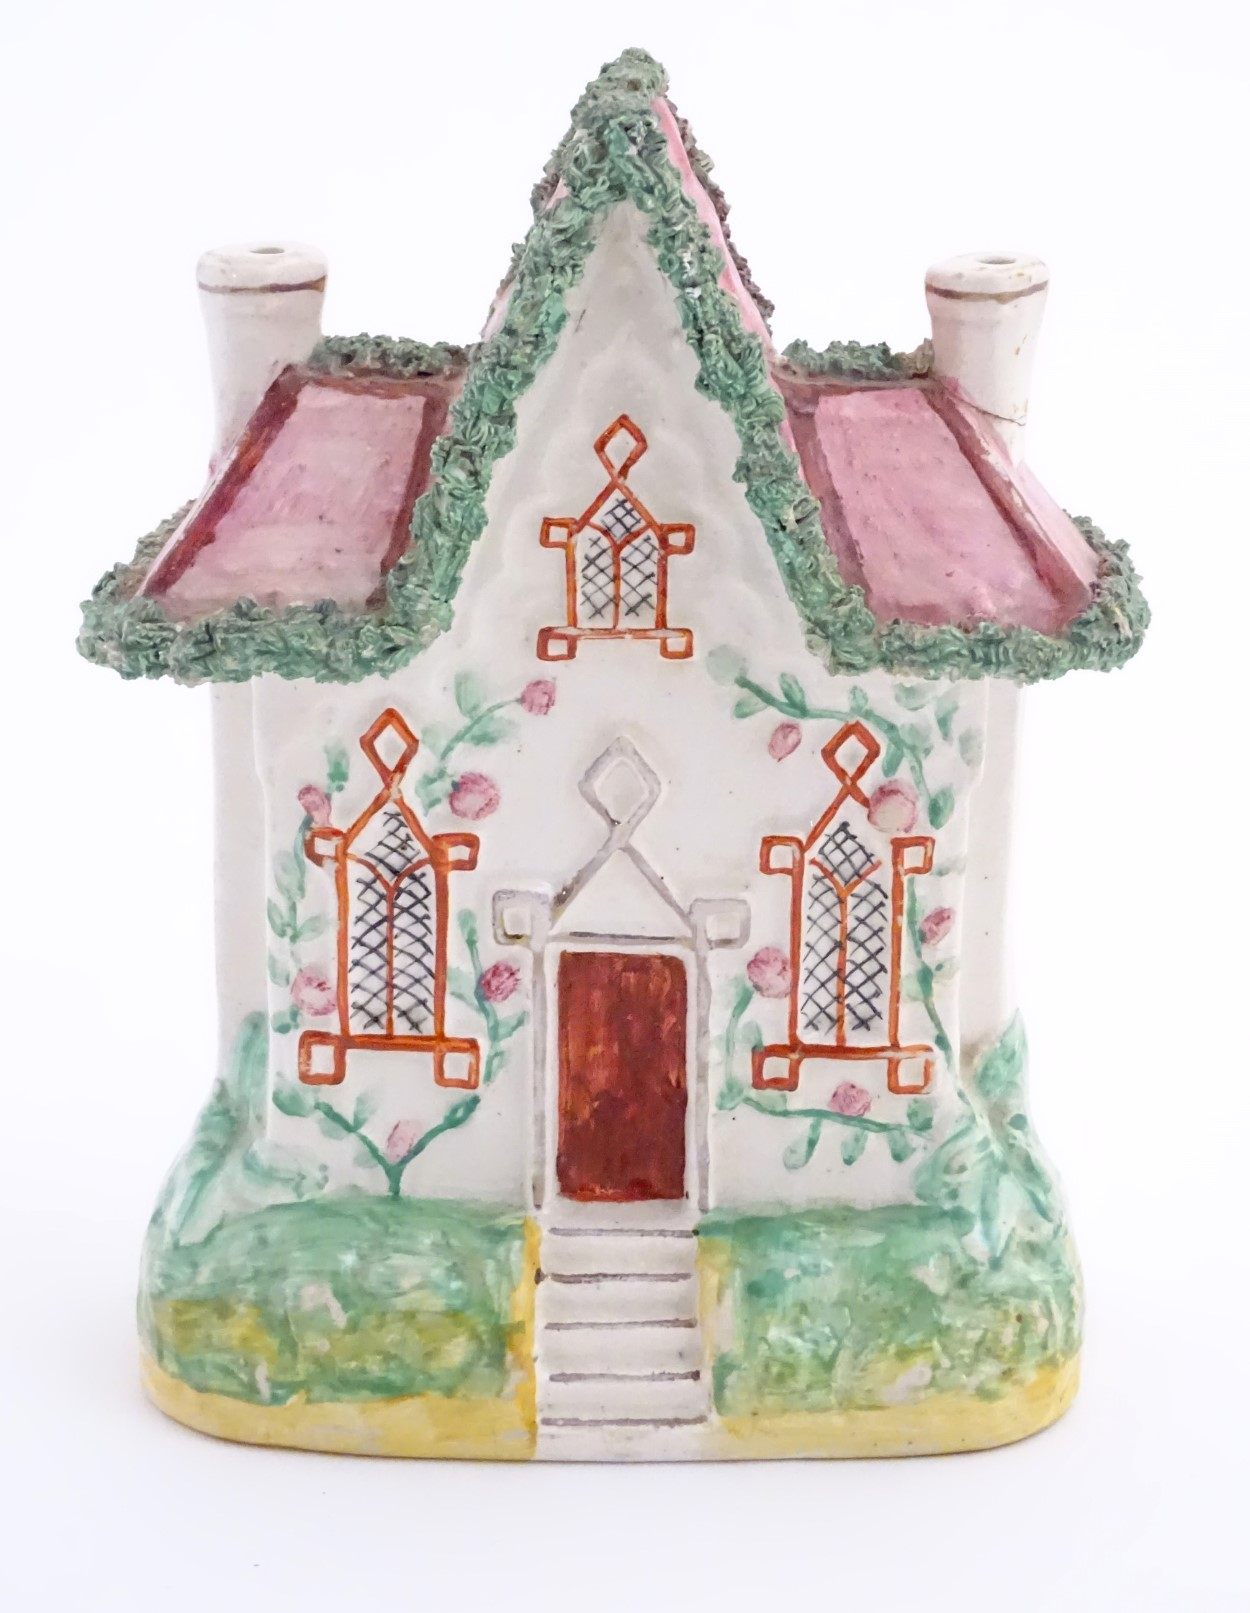 "Lot 52 - A Staffordshire pottery model of a flat back house. Approx. 8 ½"" high x 6"" wide."